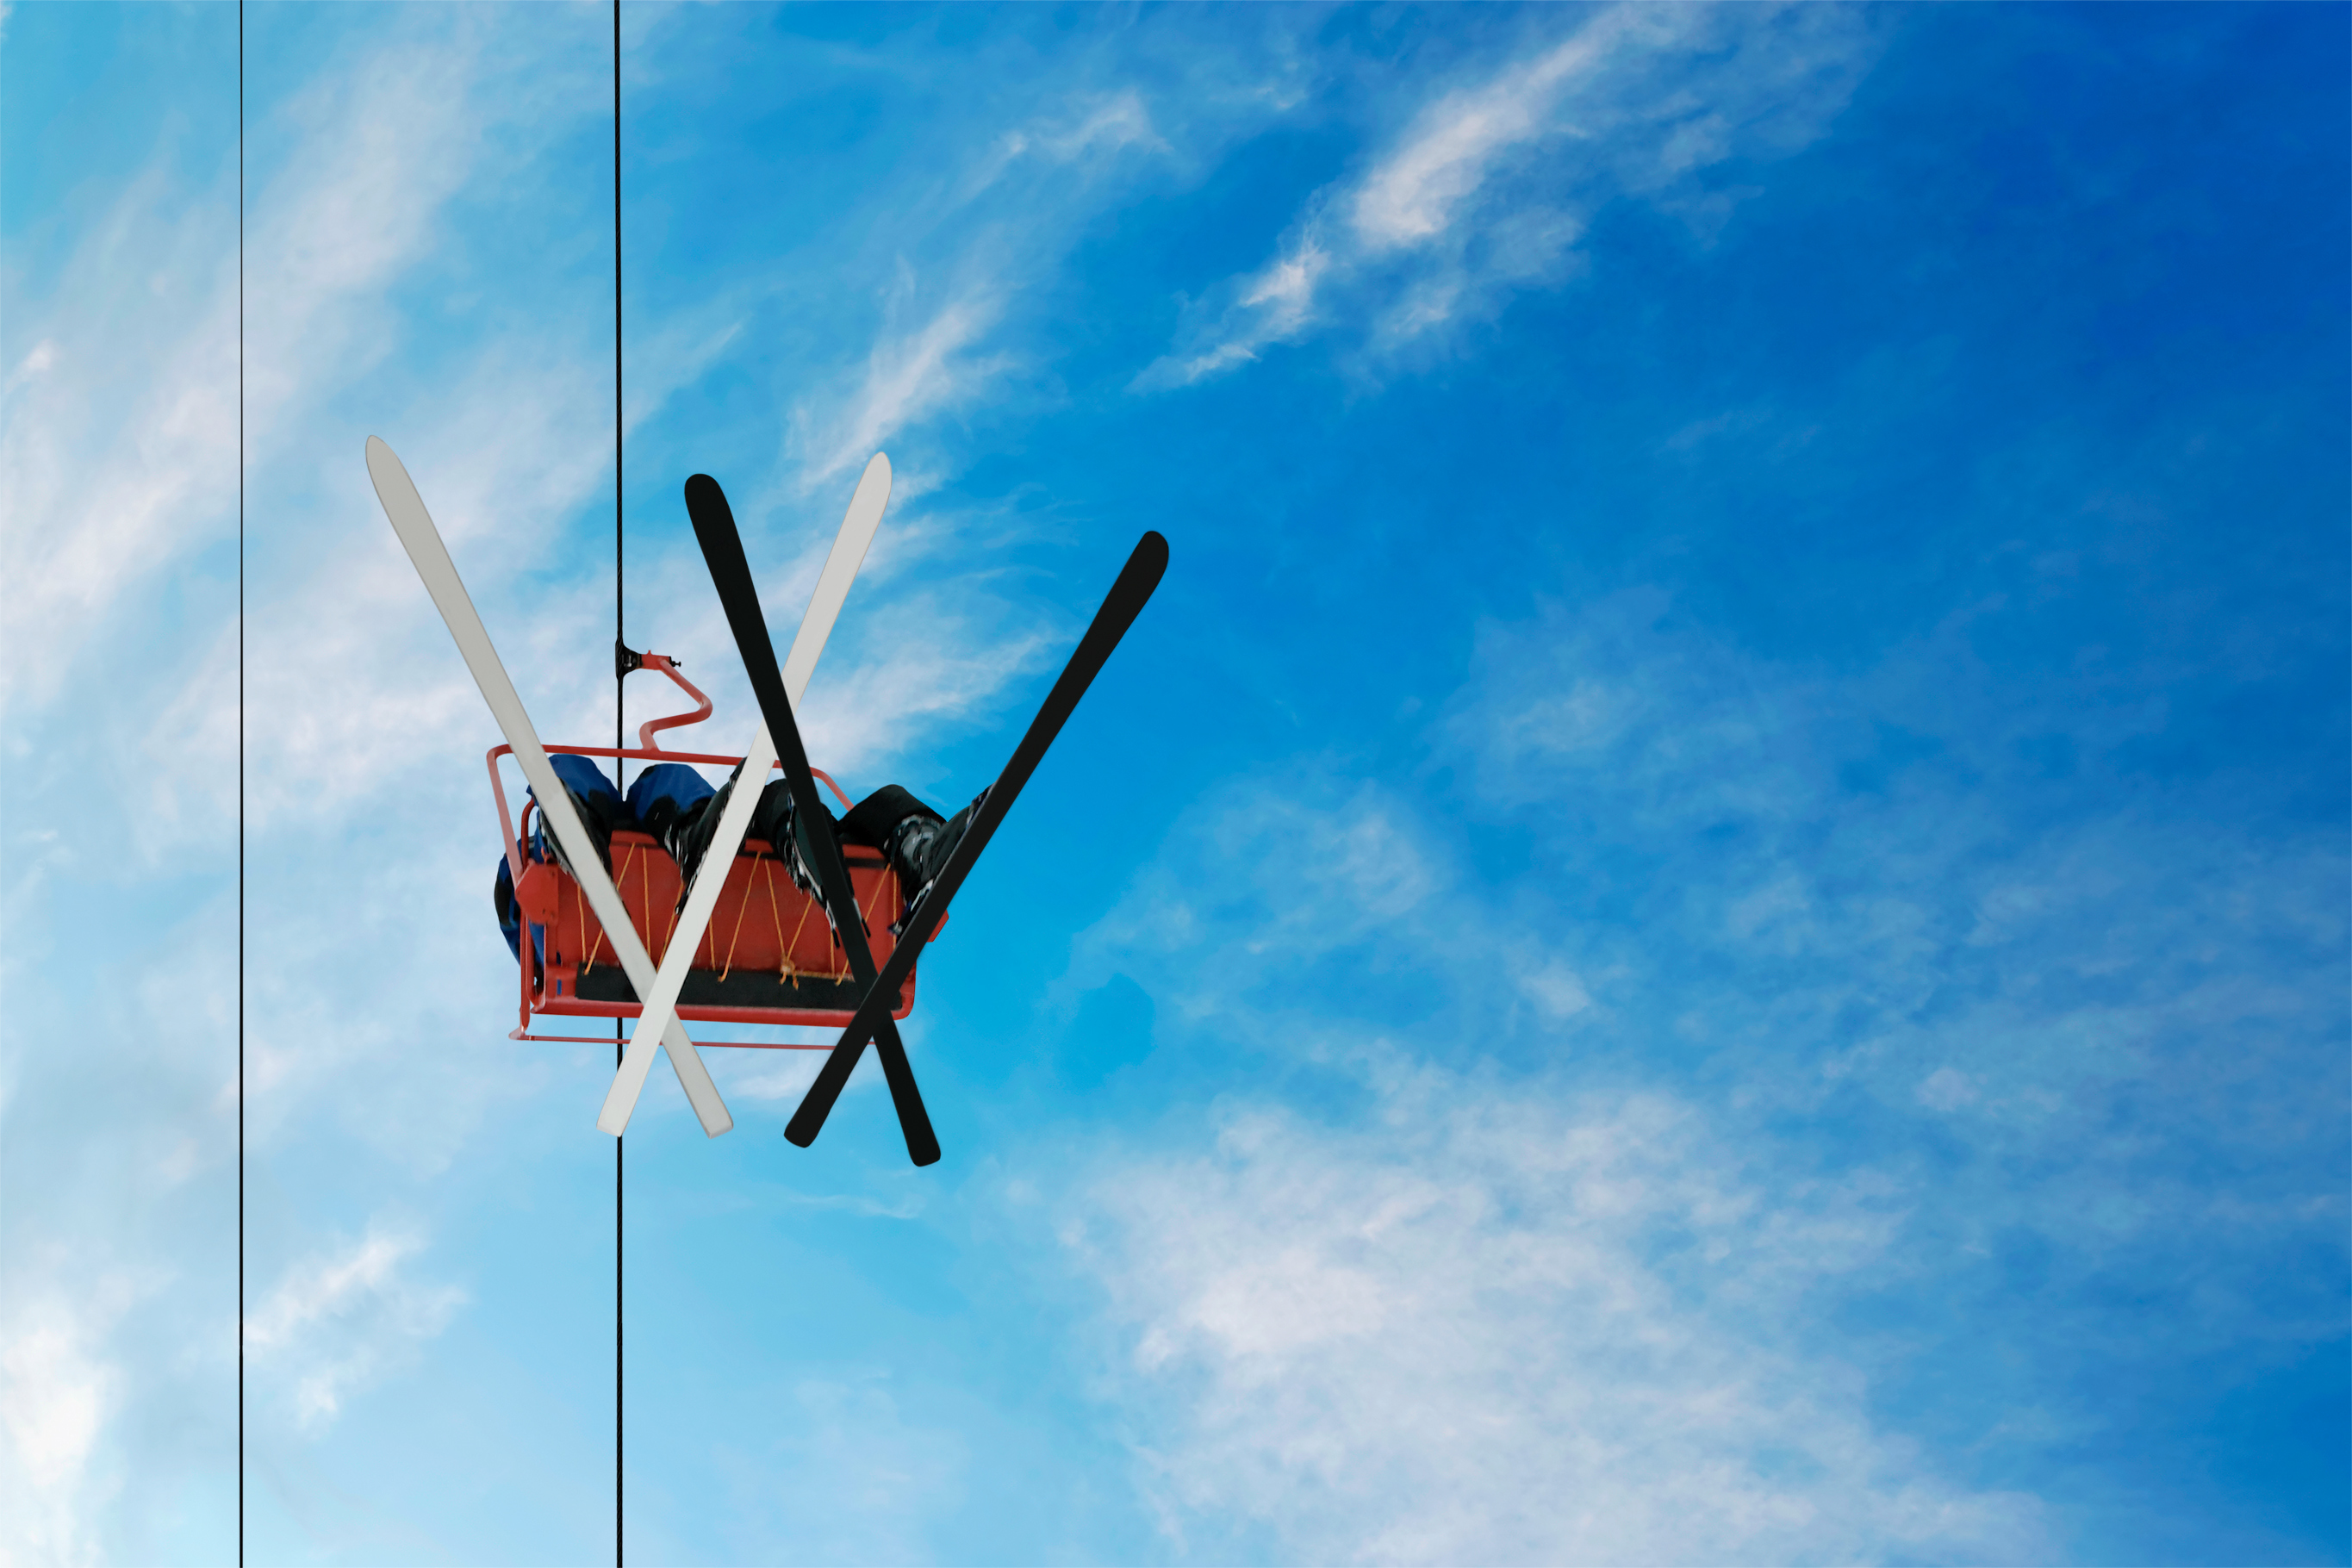 Skier suffocates to death after getting caught in chairlift